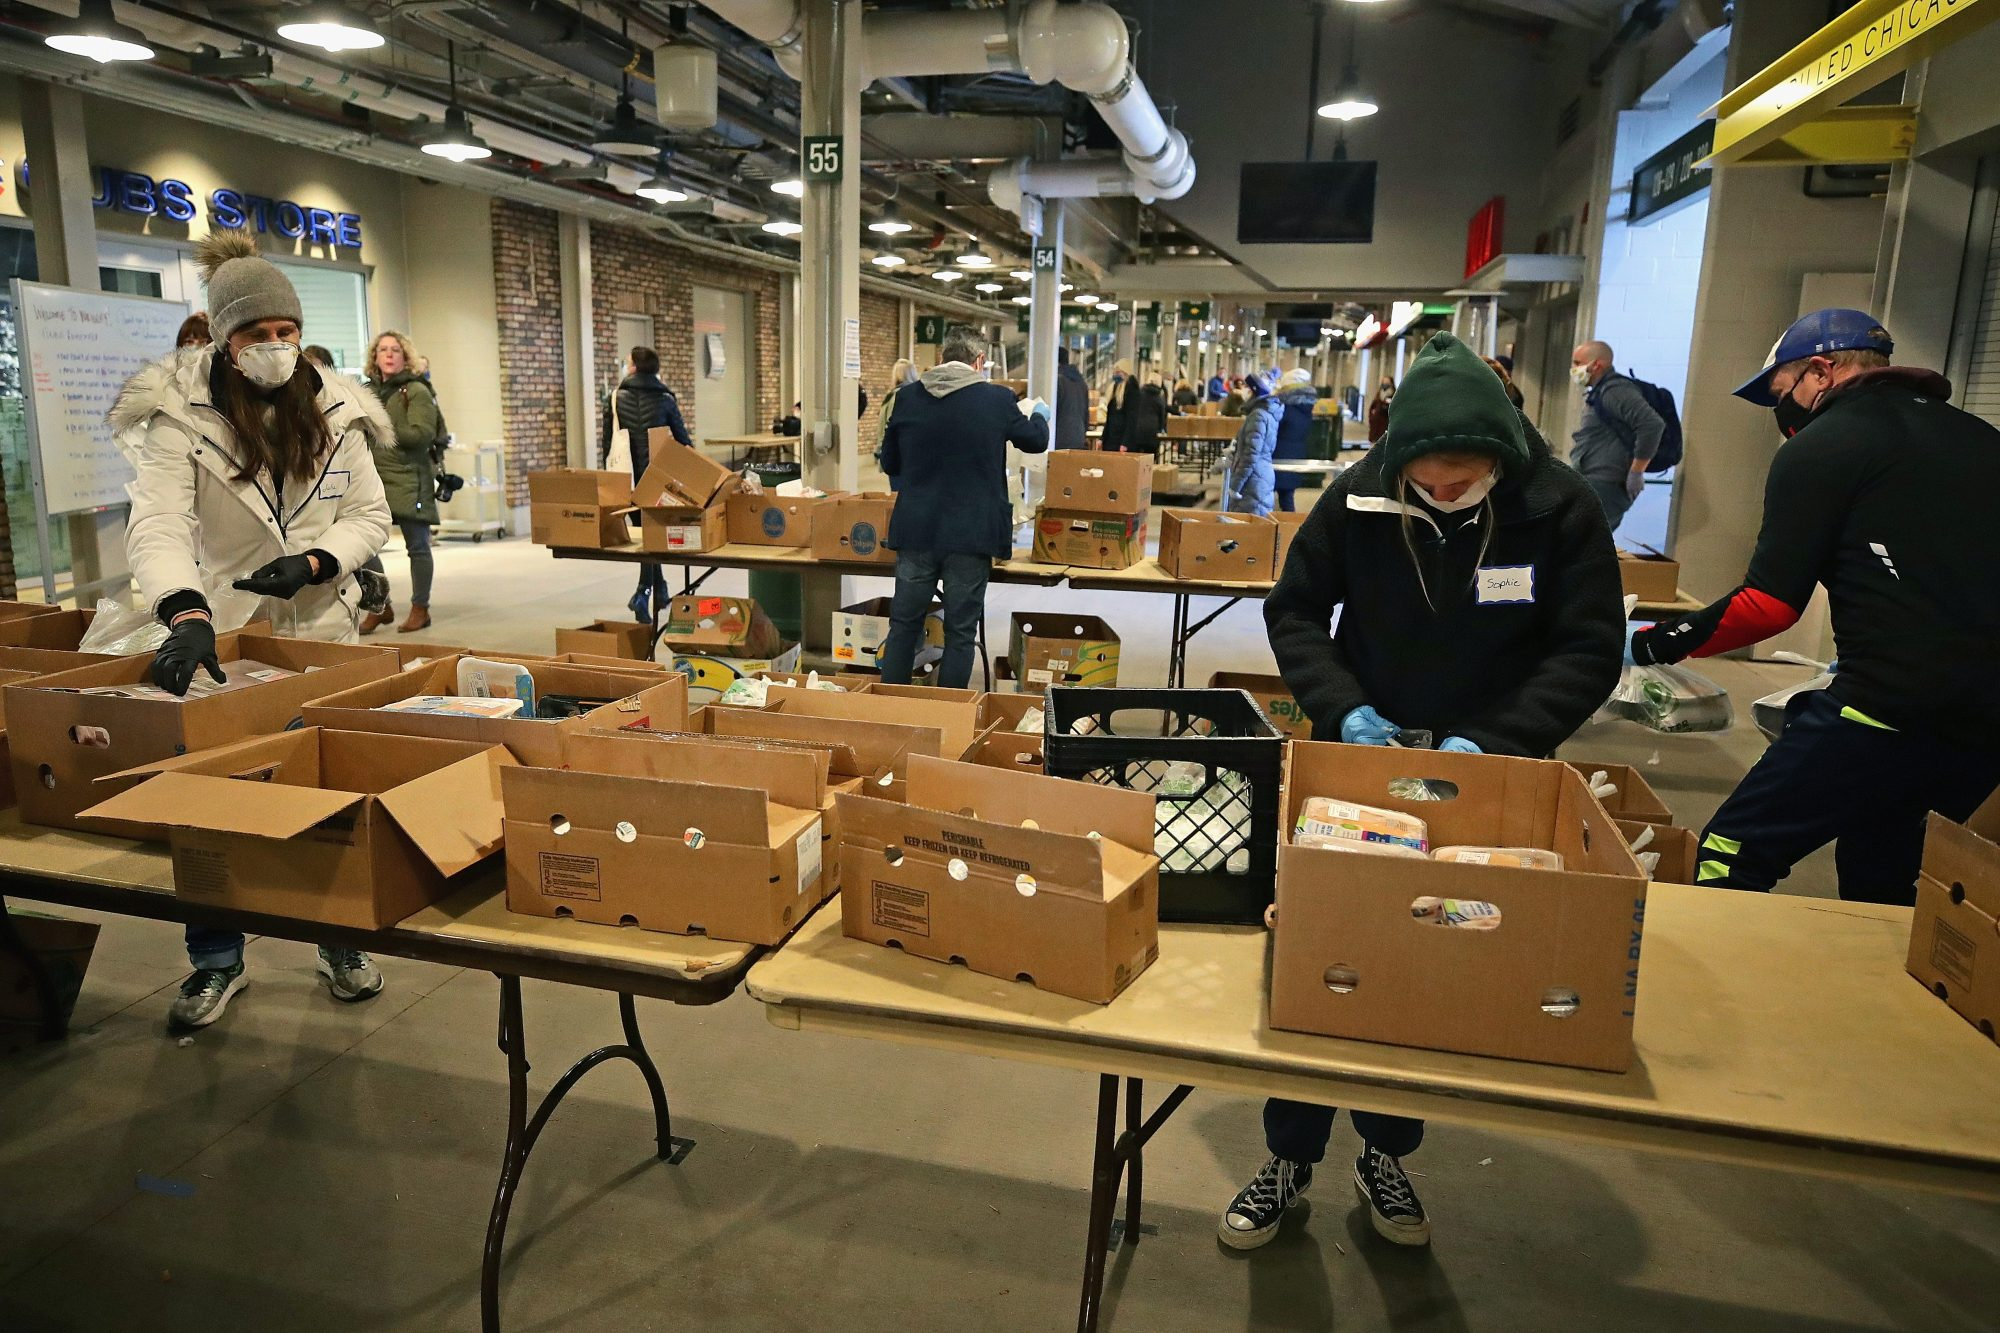 Volunteers fill cartons with food on the concourse of Wrigley Field.